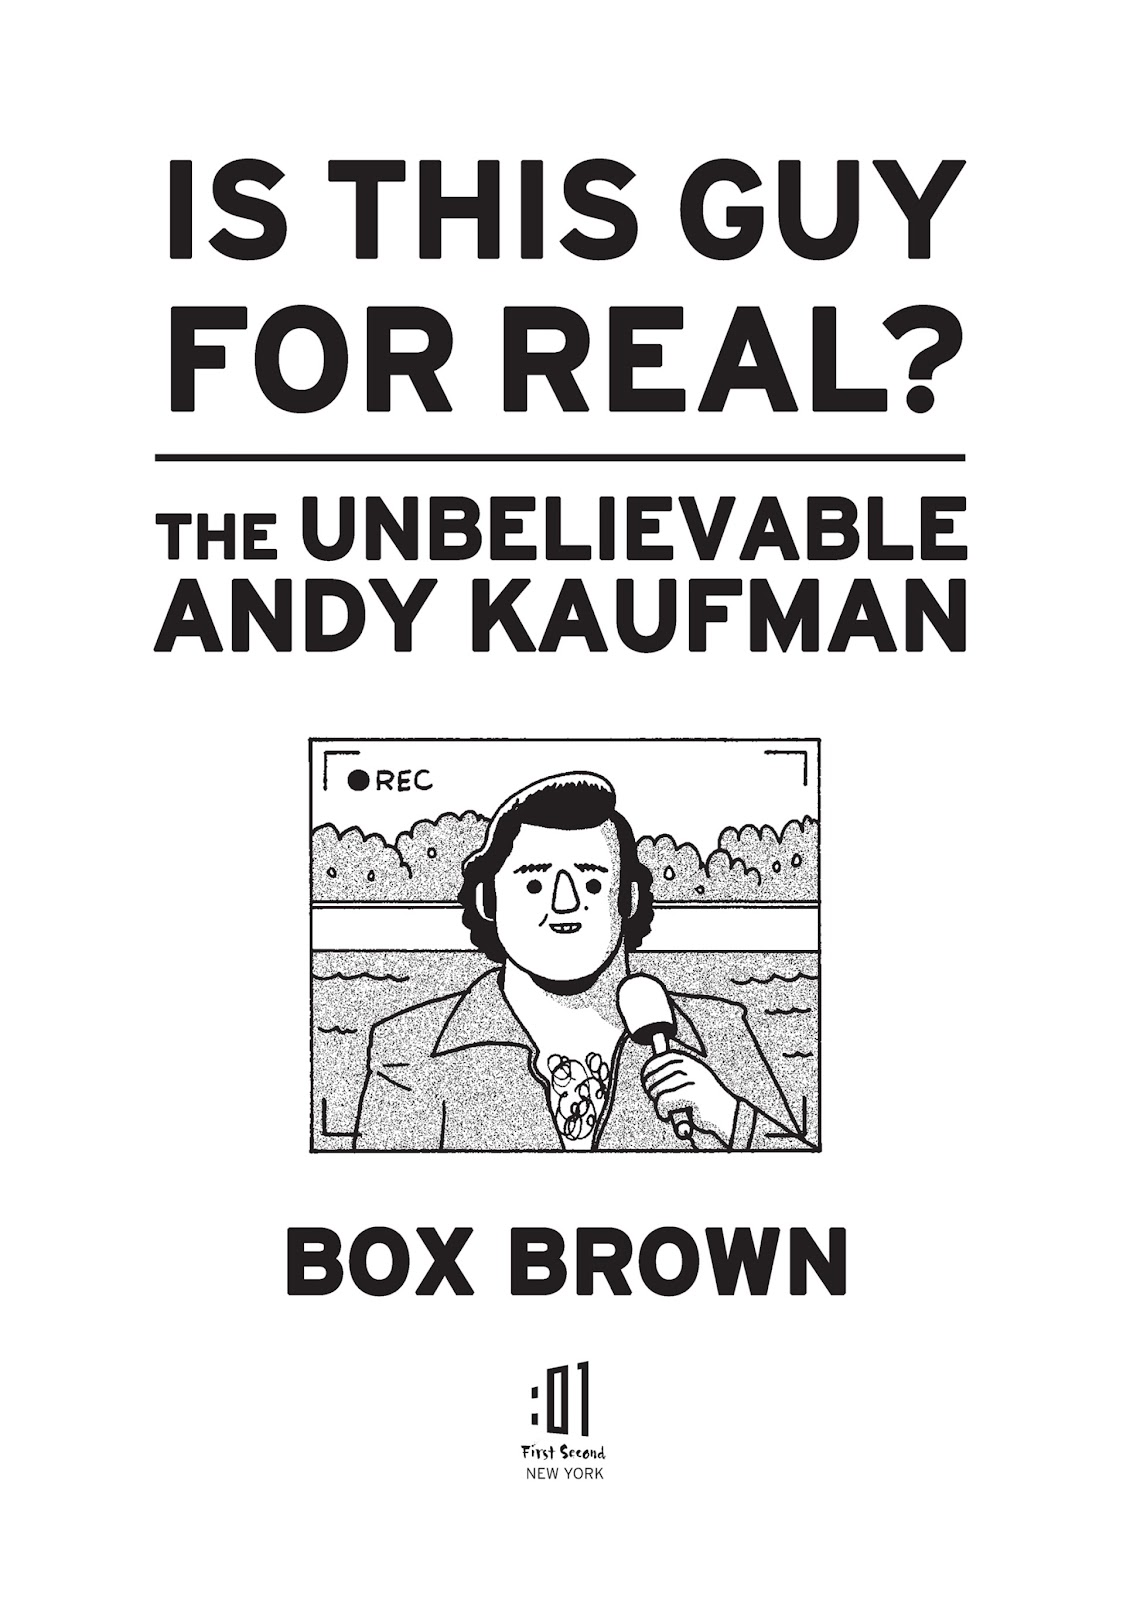 Read online Is This Guy For Real?: The Unbelievable Andy Kaufman comic -  Issue # TPB (Part 1) - 5